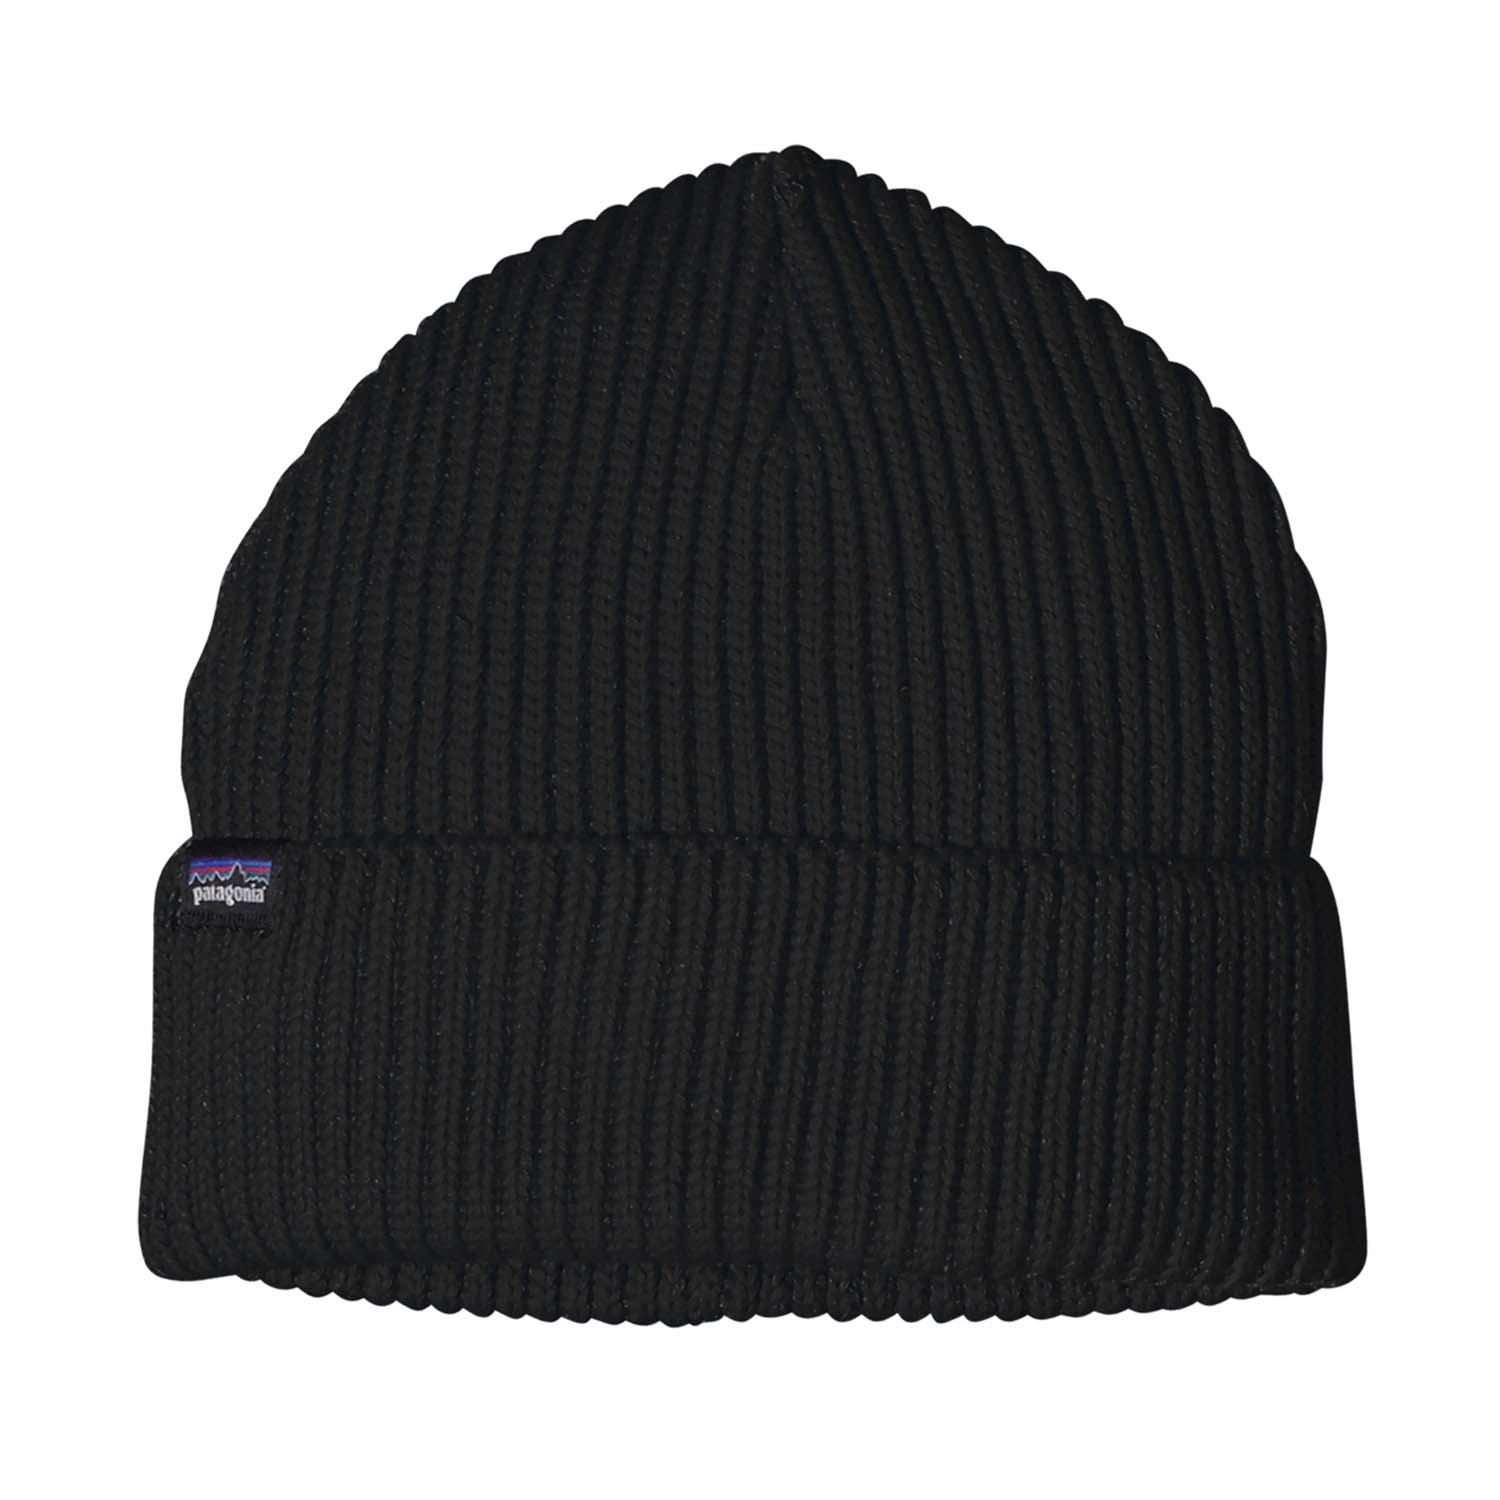 Patagonia Fishermans Rolled Beanie Black 2020